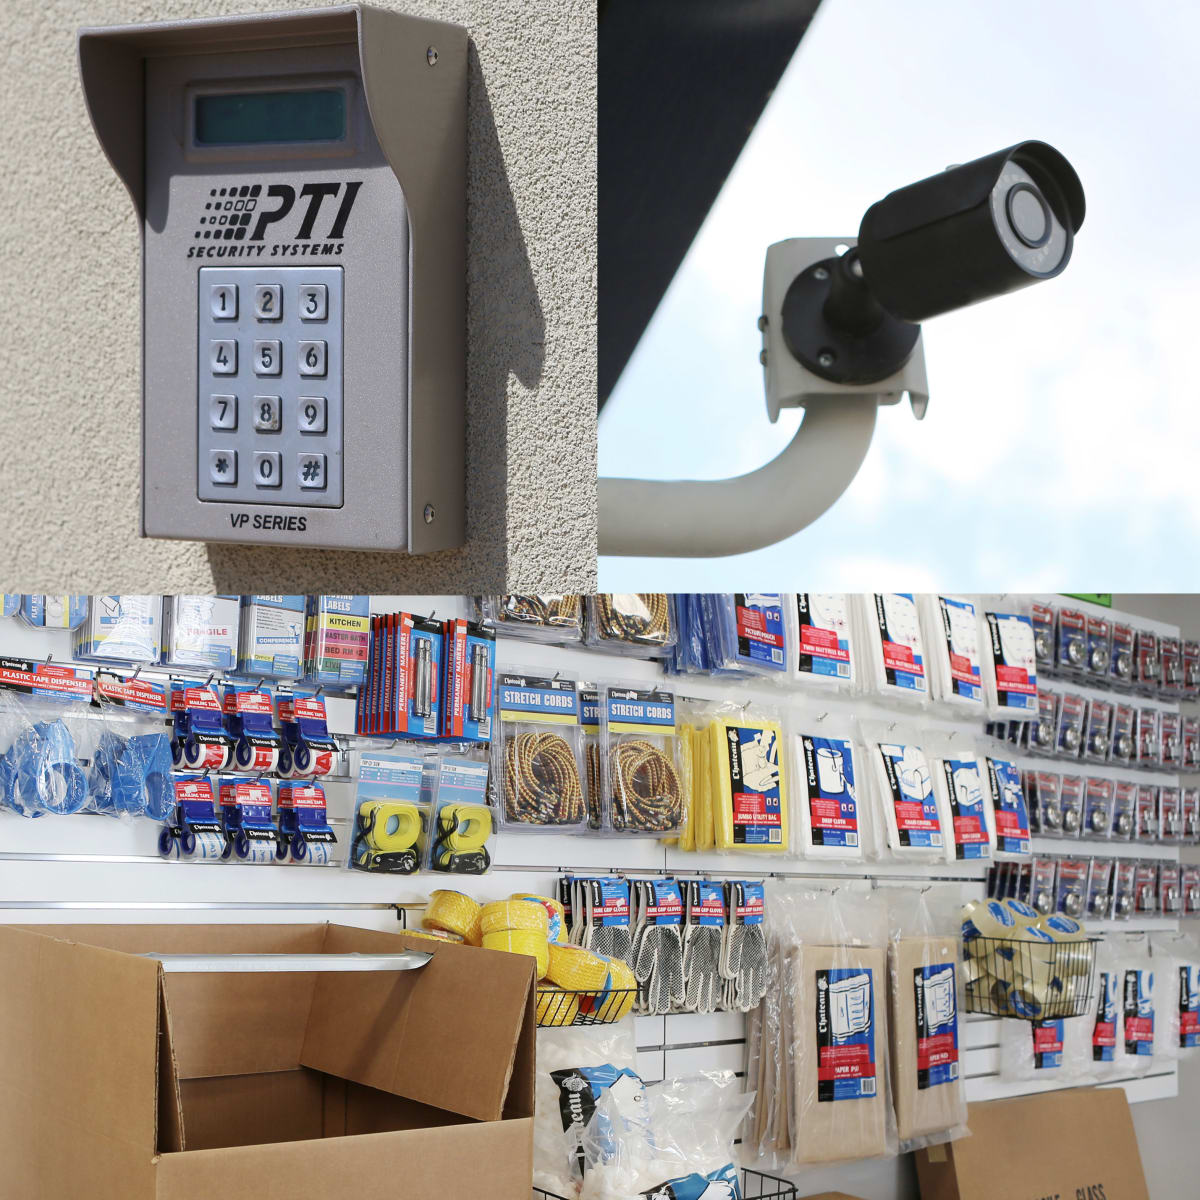 We provide 24 hour security monitoring and sell various moving and packing supplies at Midgard Self Storage in Lake Wylie, South Carolina